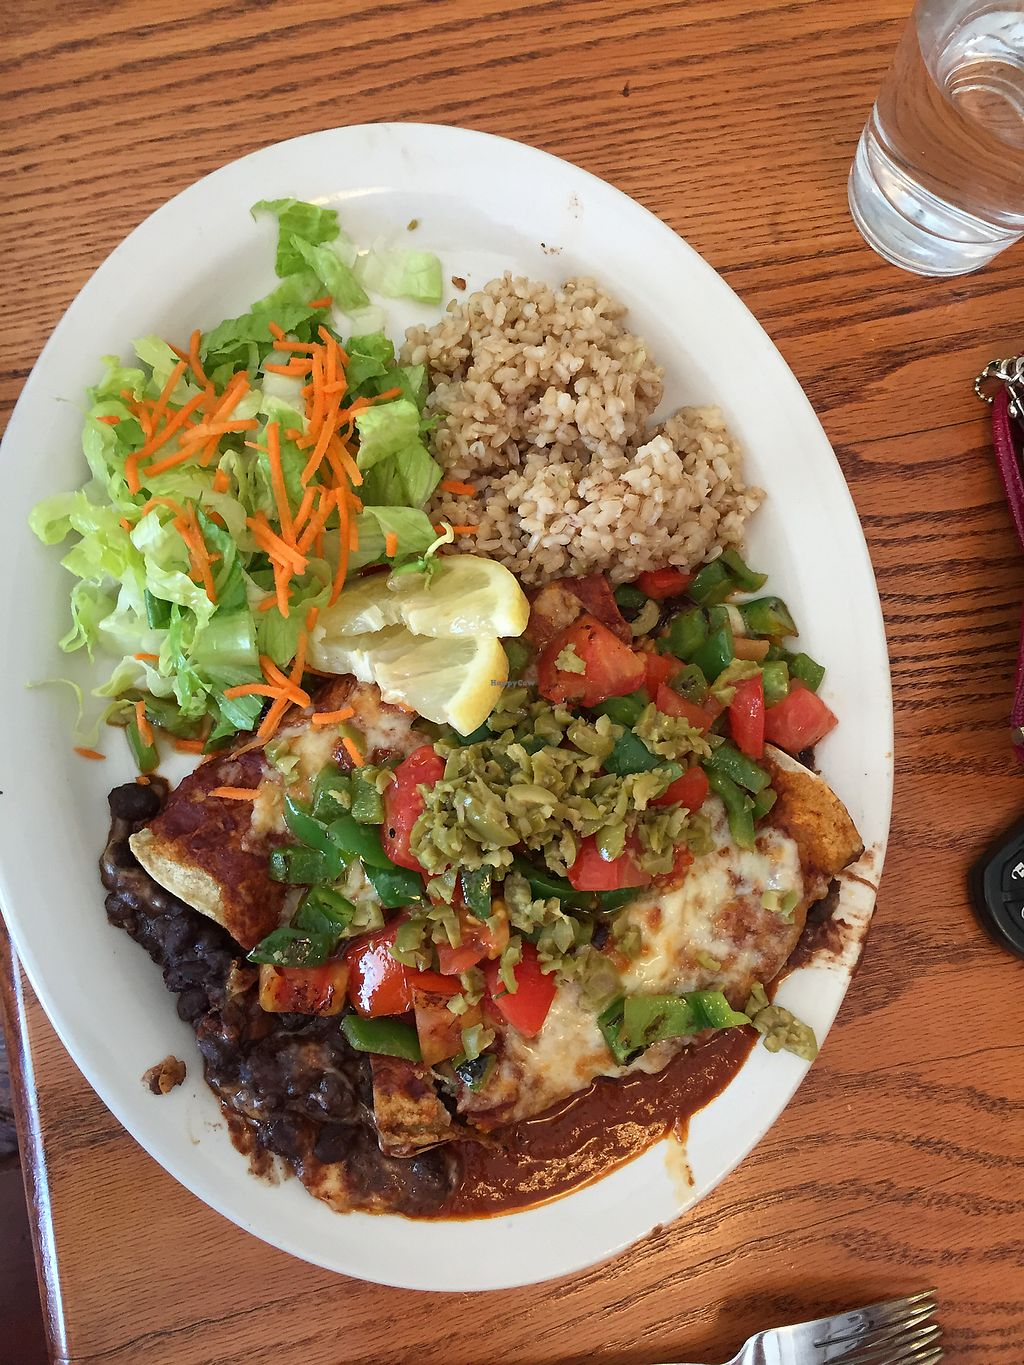 "Photo of Inn Season Cafe  by <a href=""/members/profile/MelindaTowns"">MelindaTowns</a> <br/>Enchiladas <br/> August 6, 2017  - <a href='/contact/abuse/image/2727/289472'>Report</a>"